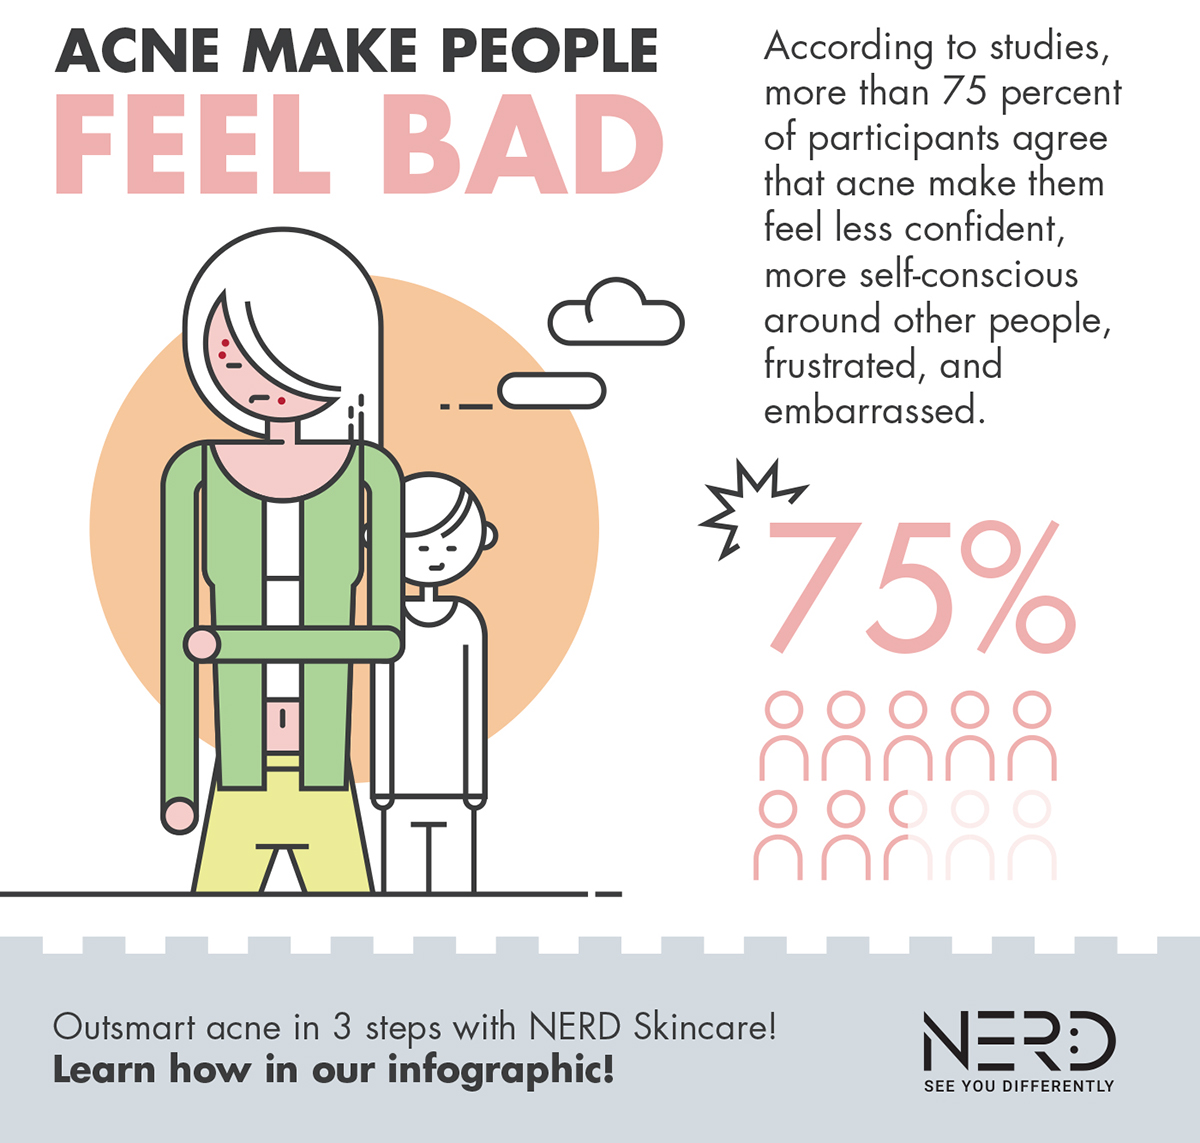 skin care acne infographic Treatment information graphic race